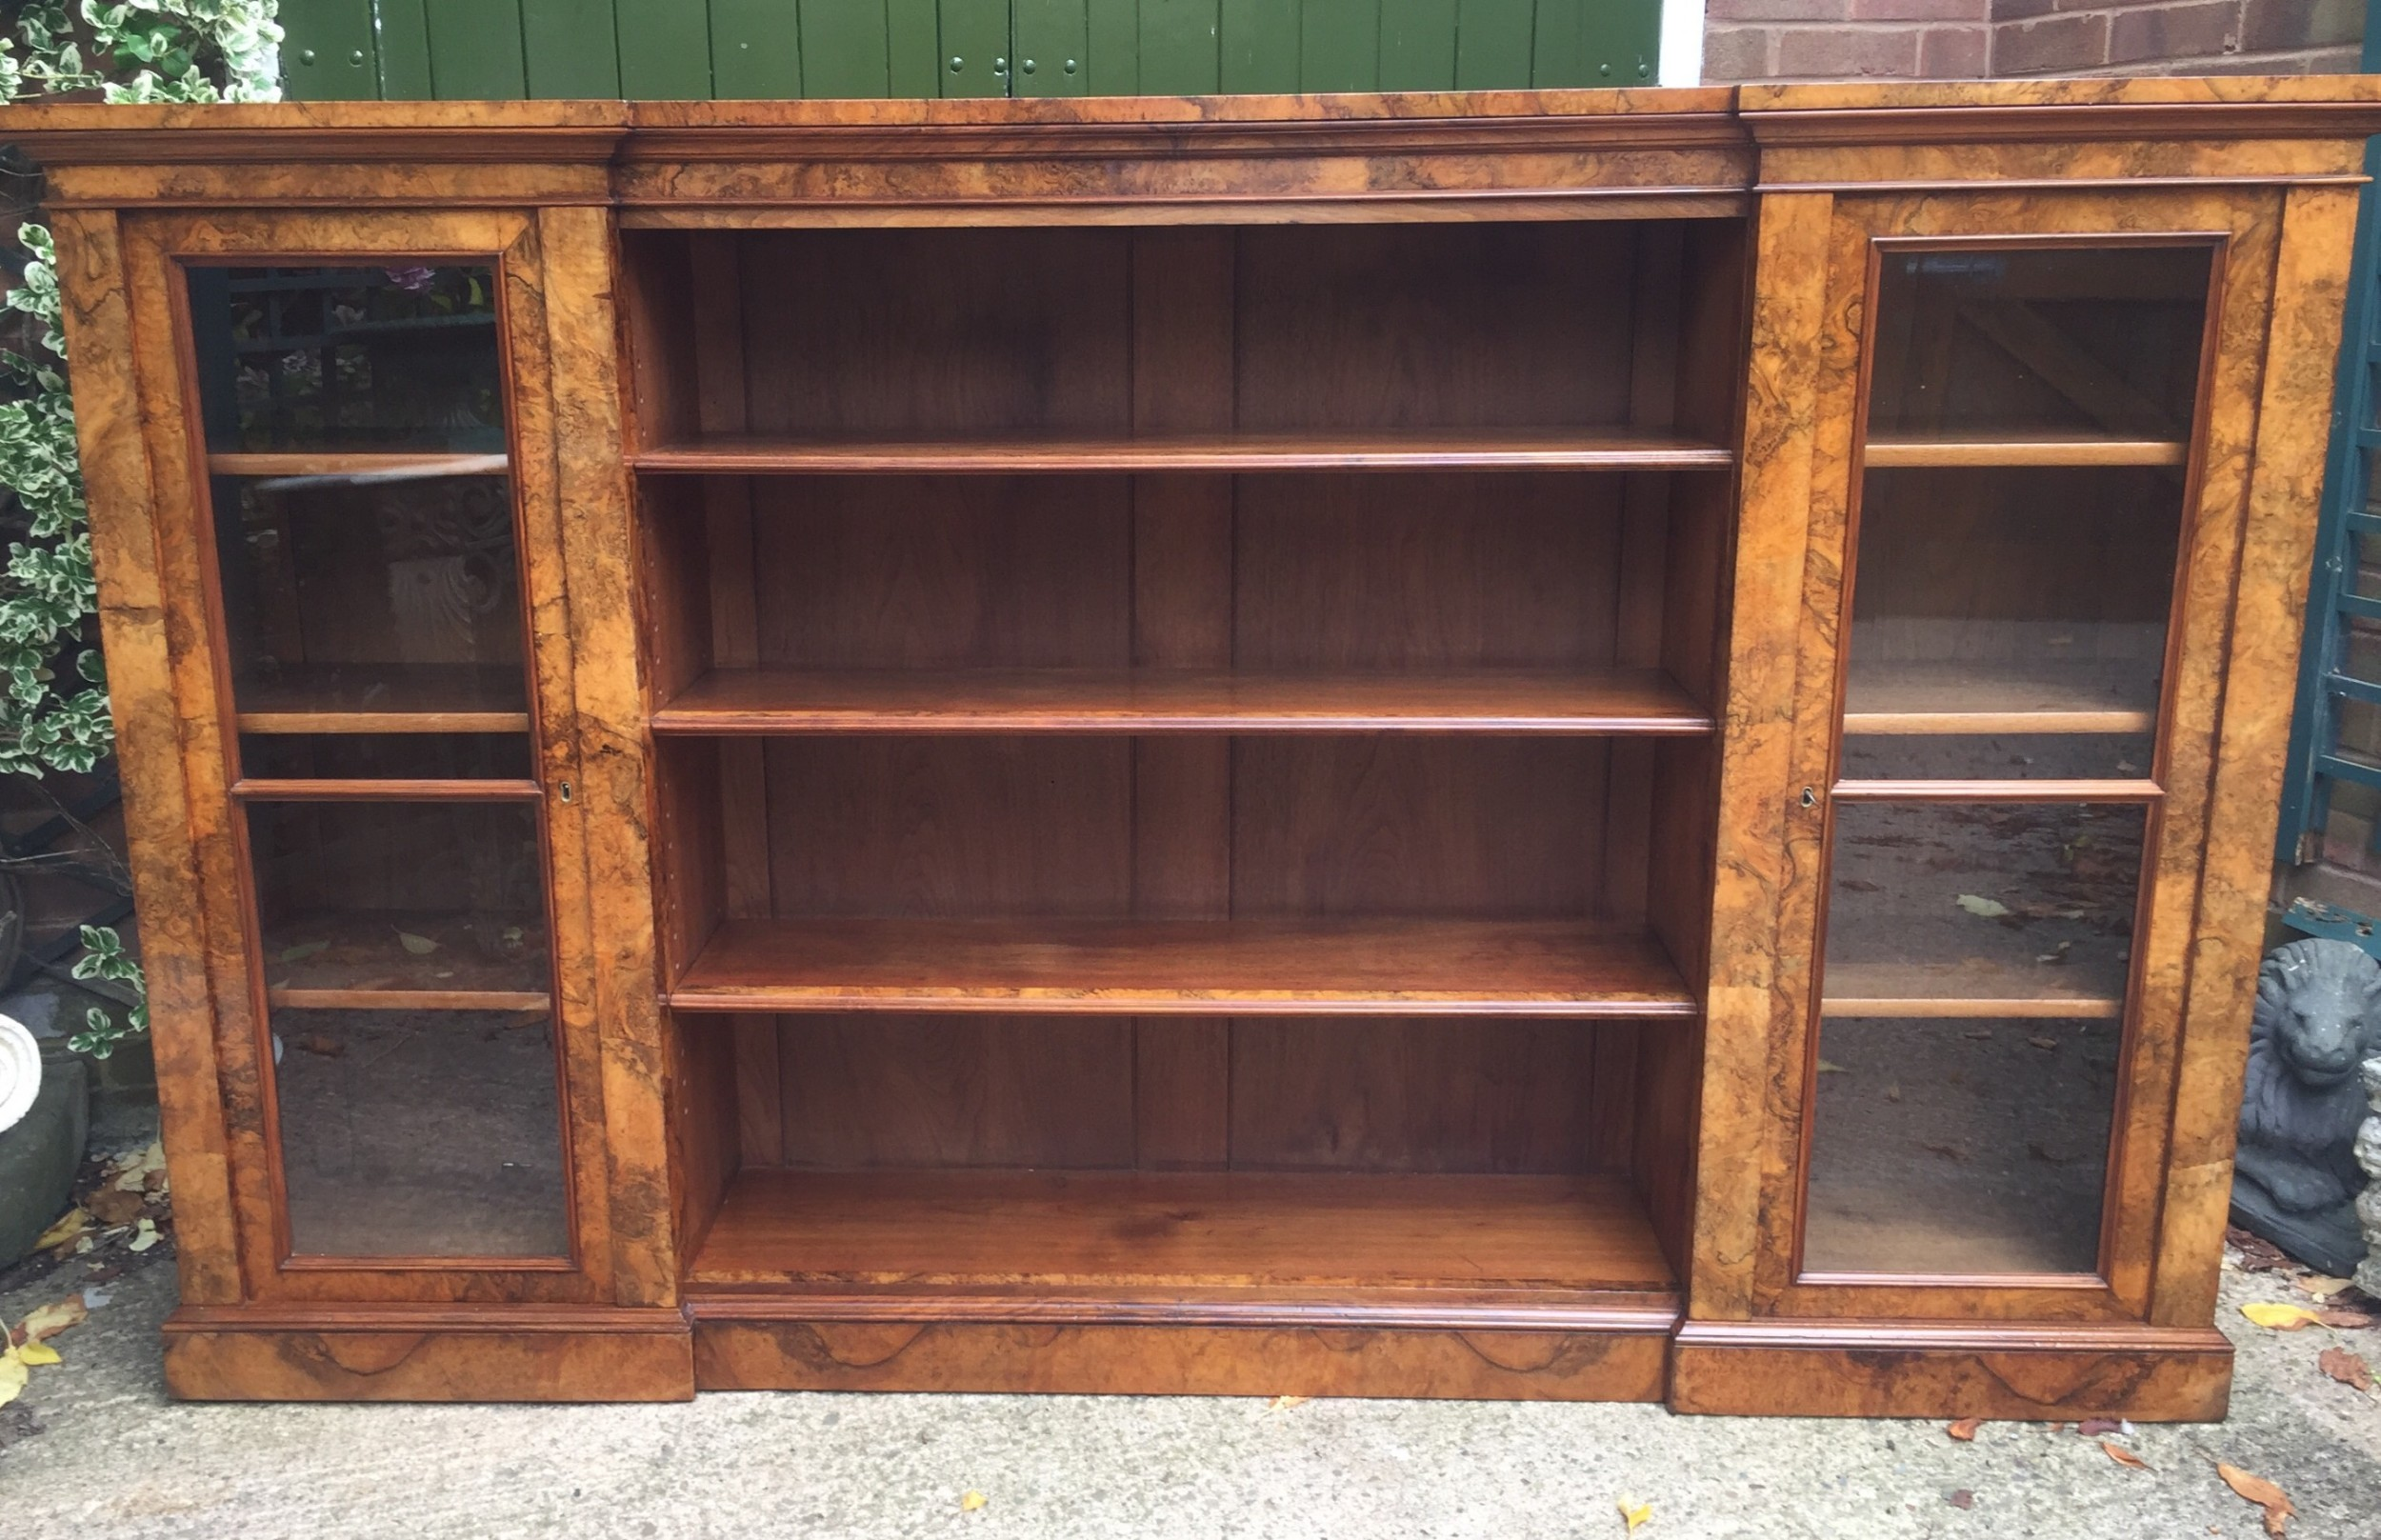 superb quality mid c19th burr walnut bookcase cabinet by gillows of lancaster